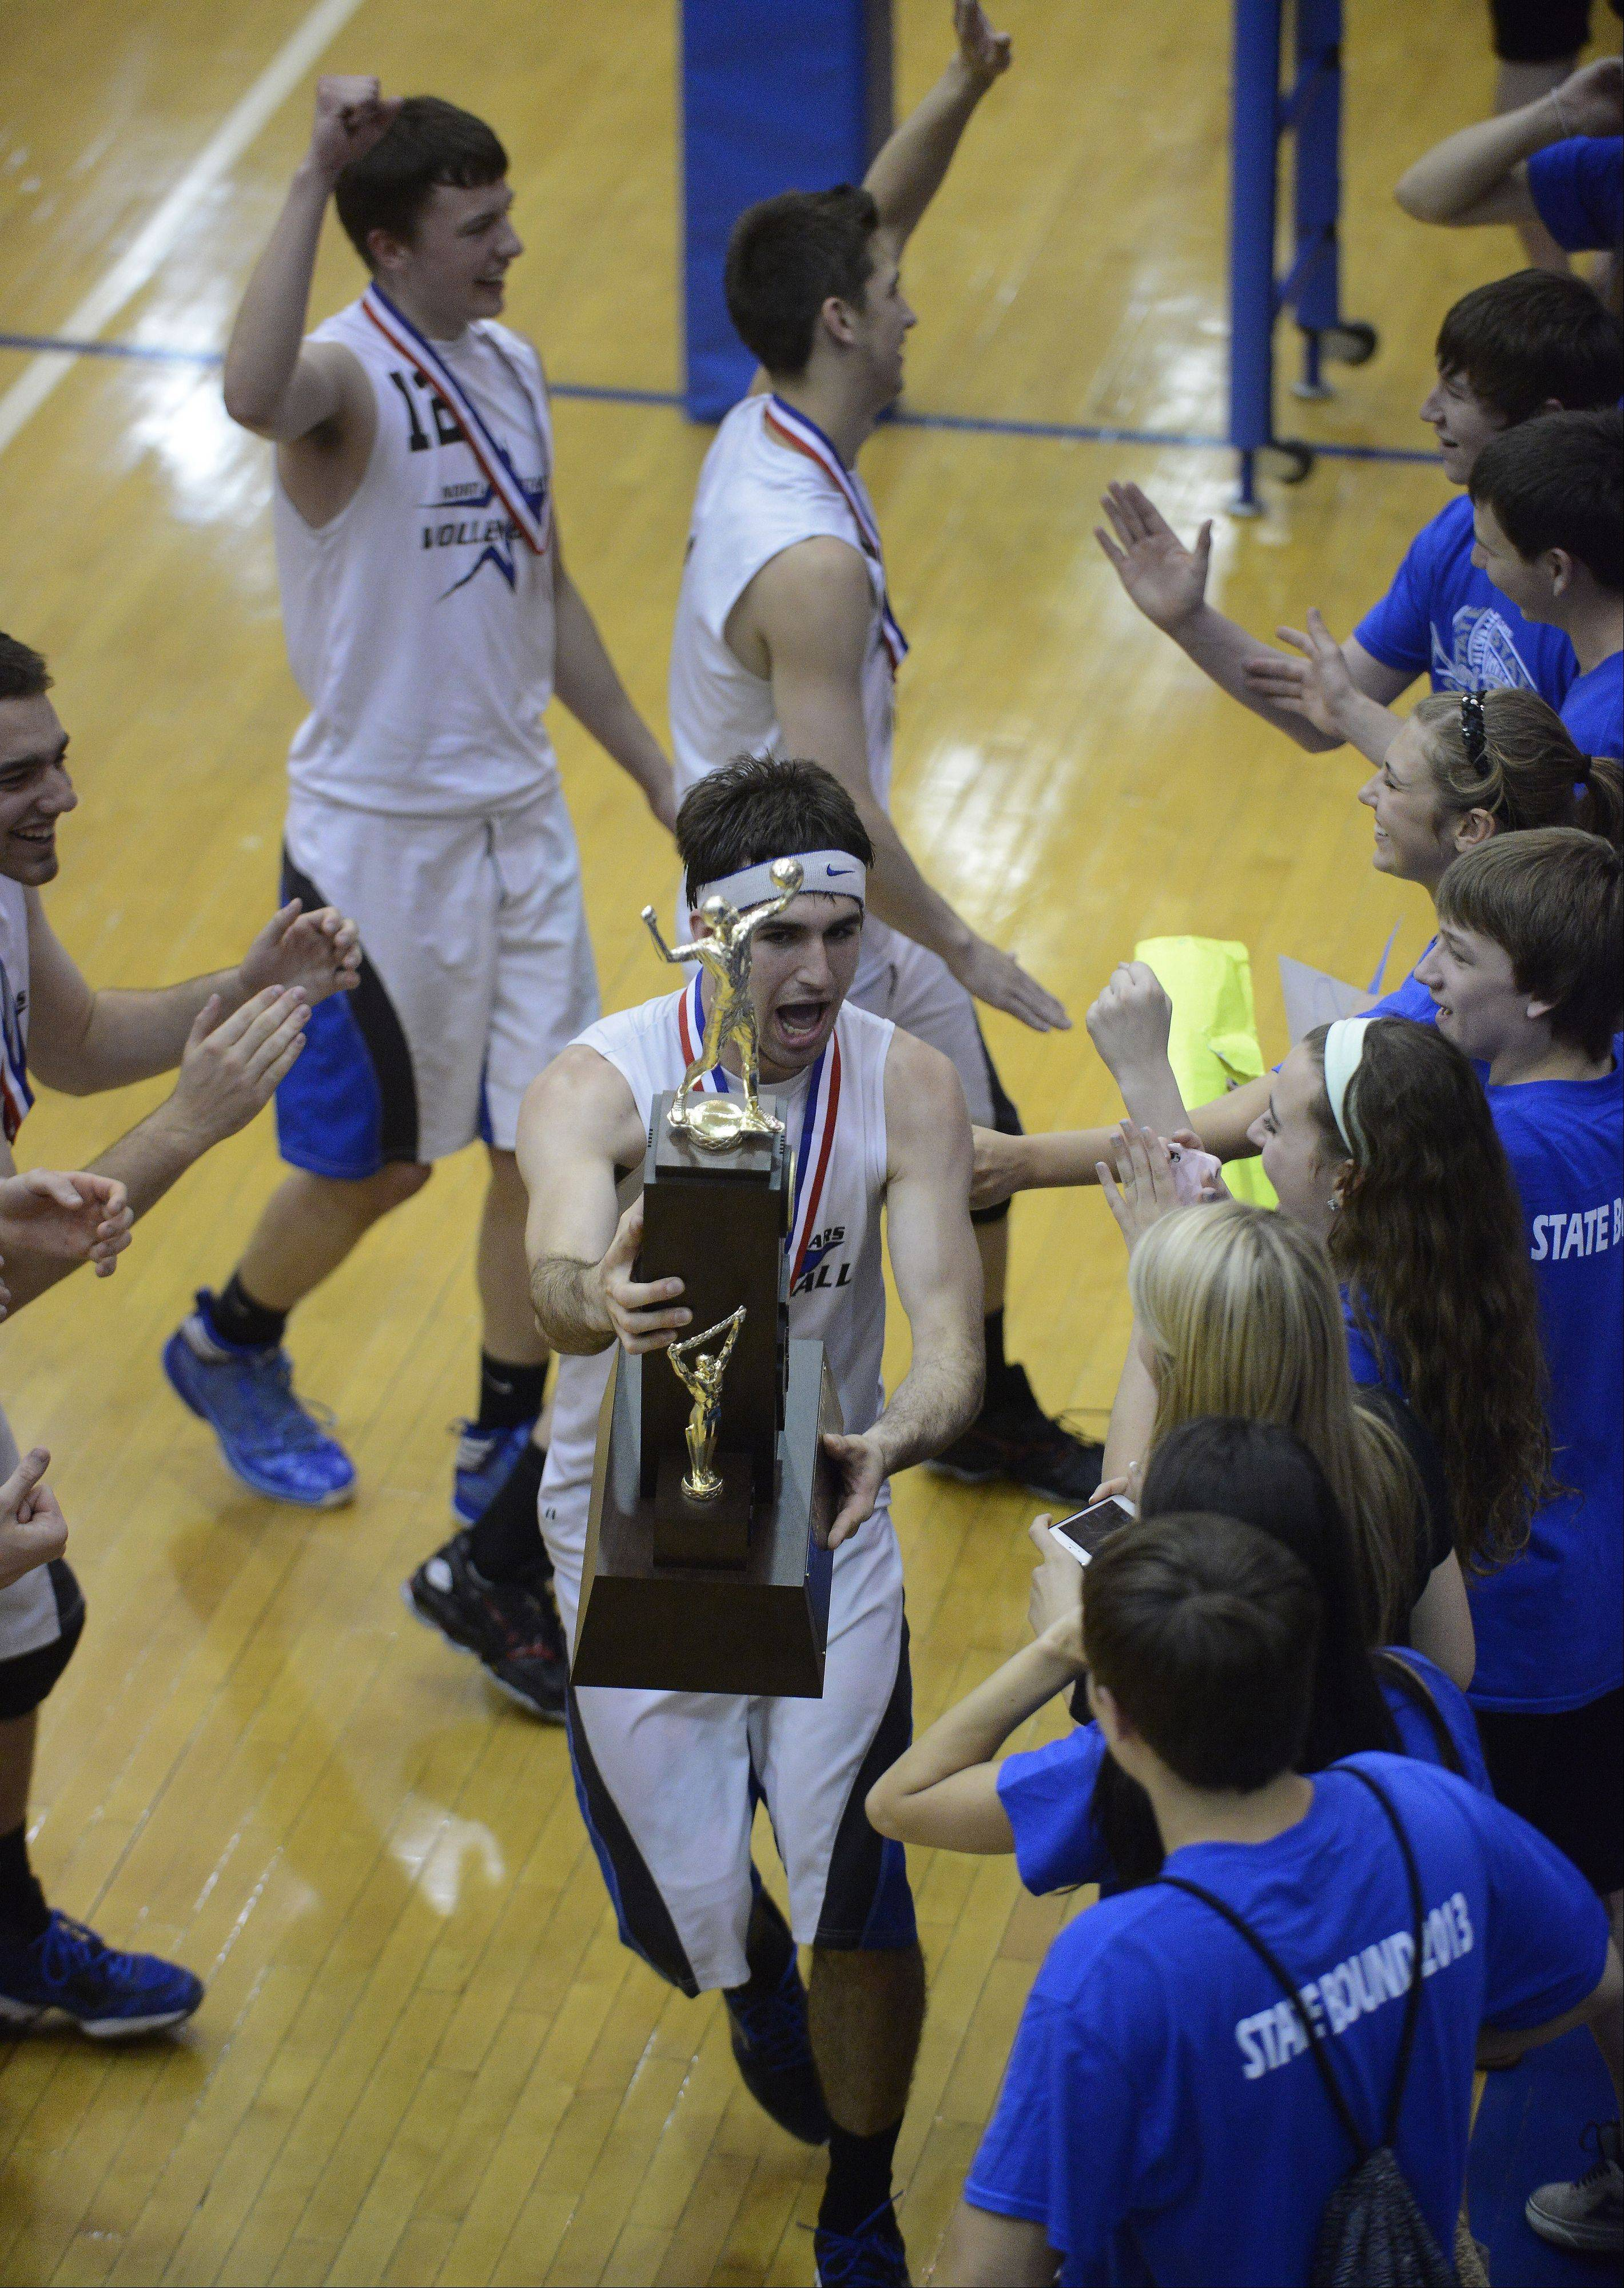 Jonathan Orech of St. Charles North shows the third-place trophy to fans following the team's victory over Glenbrook South at Hoffman Estates High School Saturday.